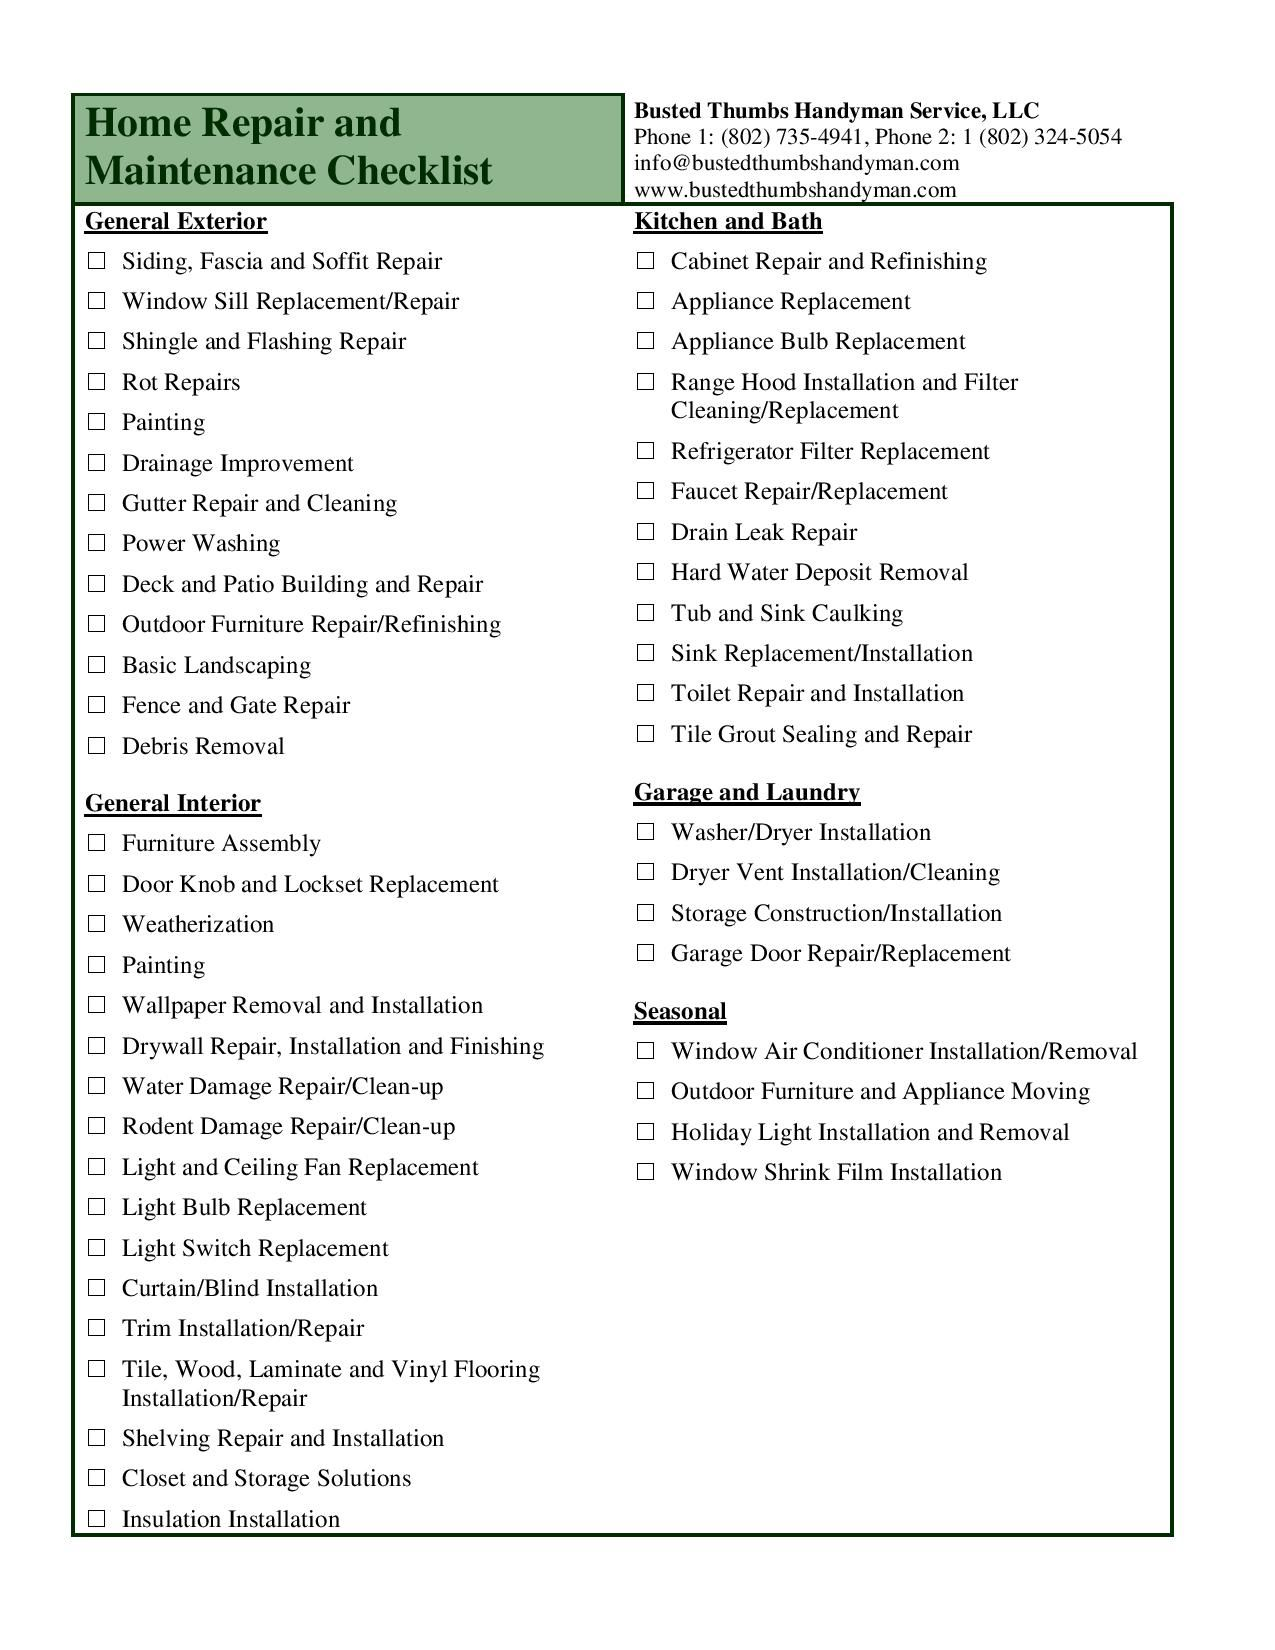 Home Remodeling Project Checklist